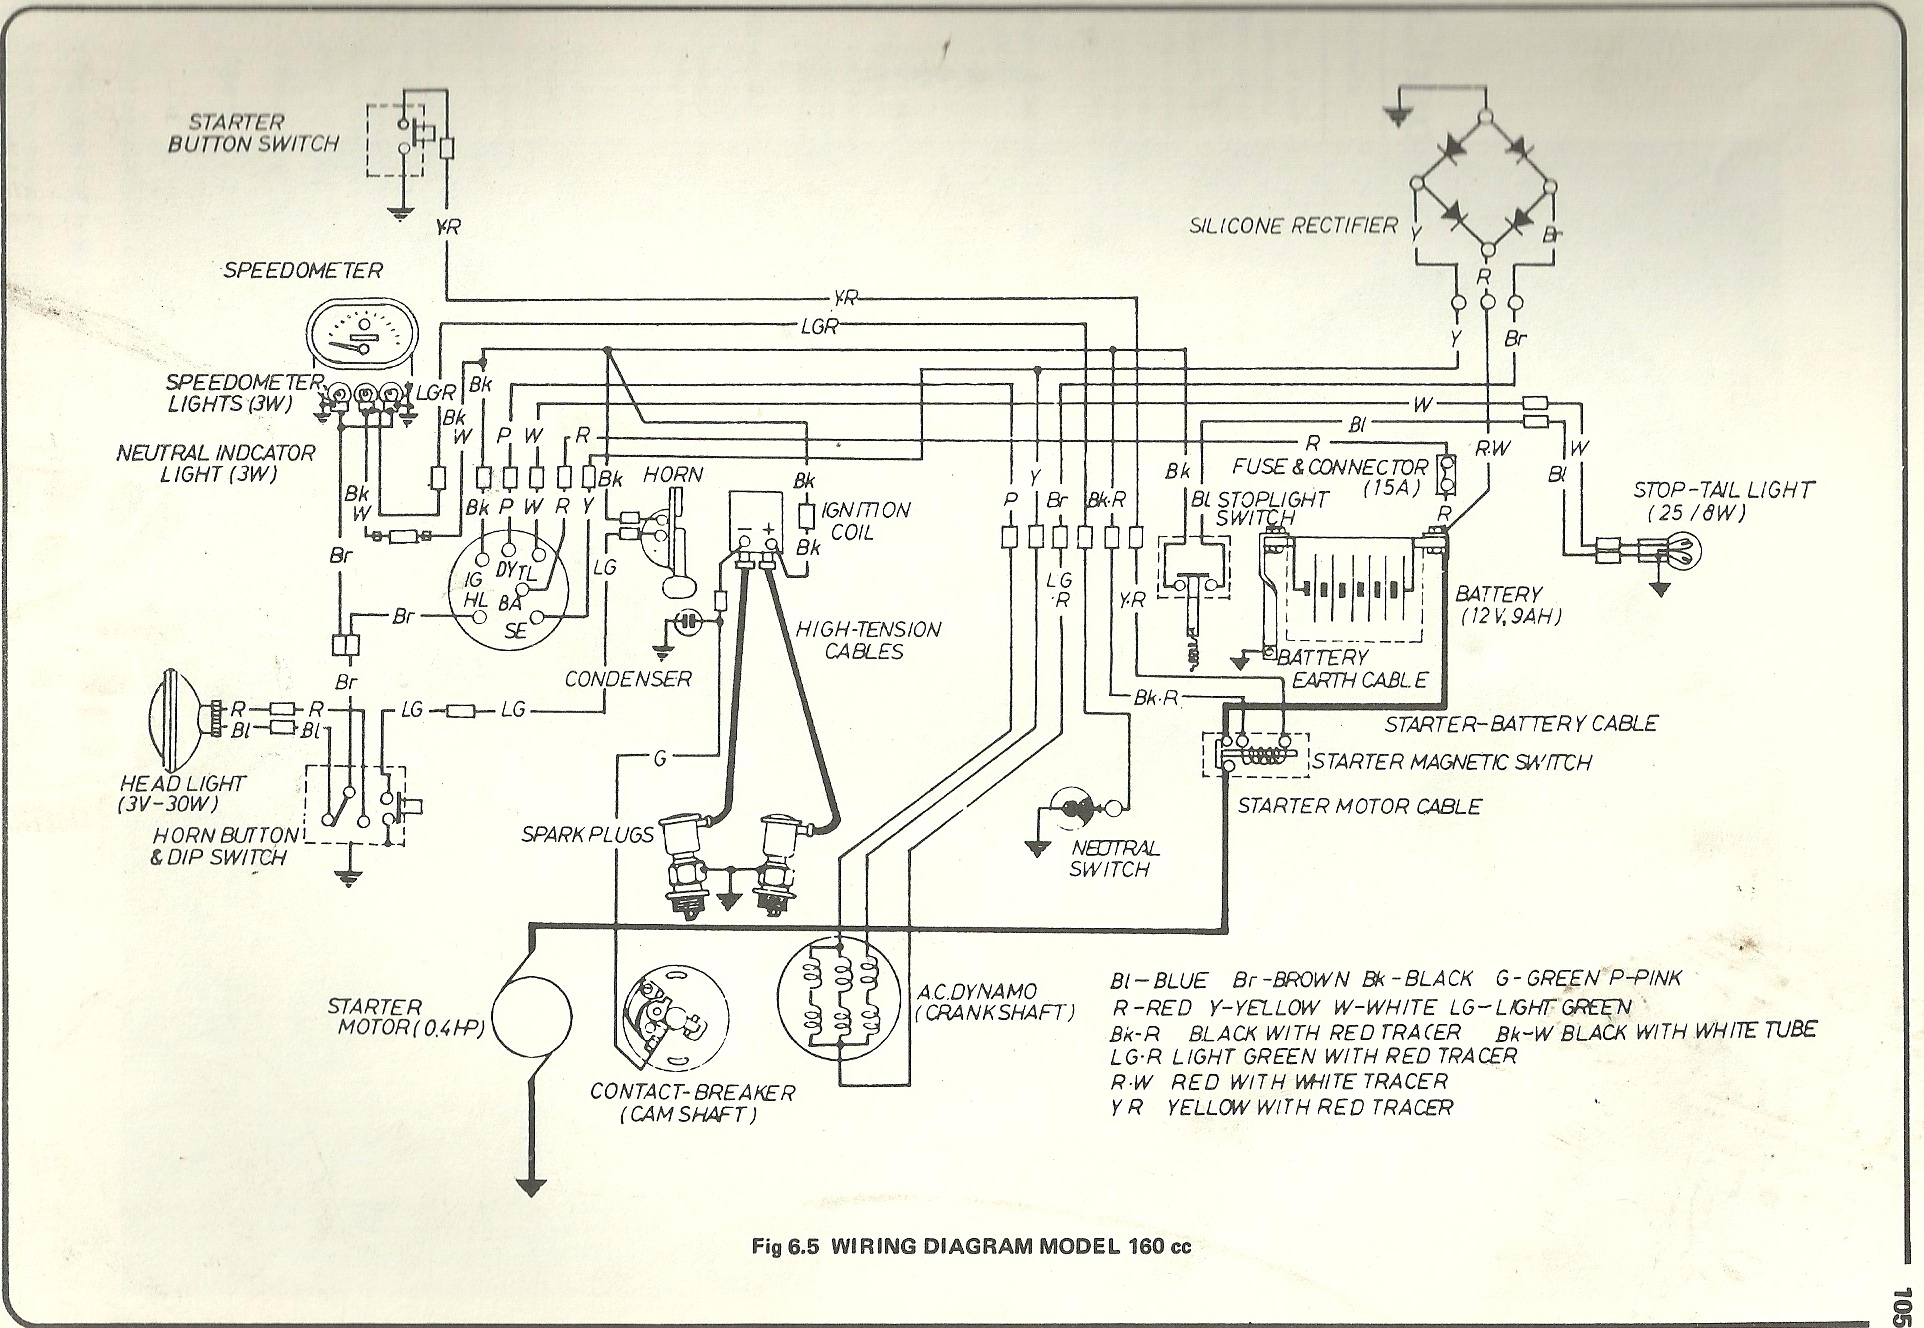 wiring diagrams rh oregonmotorcycleparts com 1981 honda cb750 custom wiring  diagram 1981 honda cb750k wiring diagram